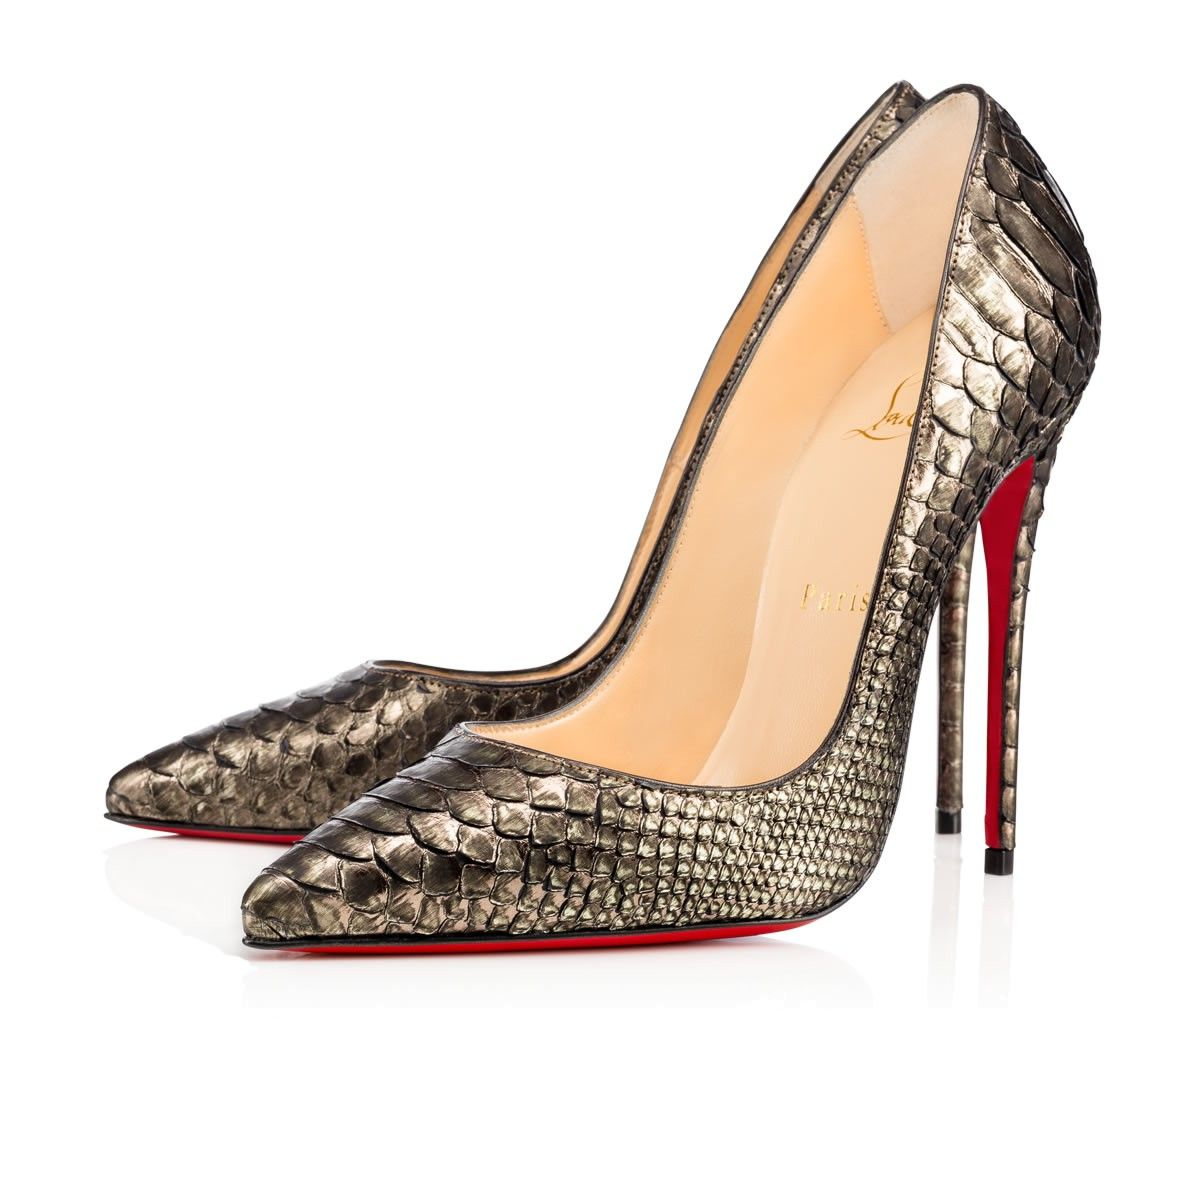 CHRISTIAN LOUBOUTIN SO KATE PYTHON CUIRASSE 120 BRONZE Python - Women Shoes  - Christian Louboutin.  christianlouboutin  shoes   f889c18d5